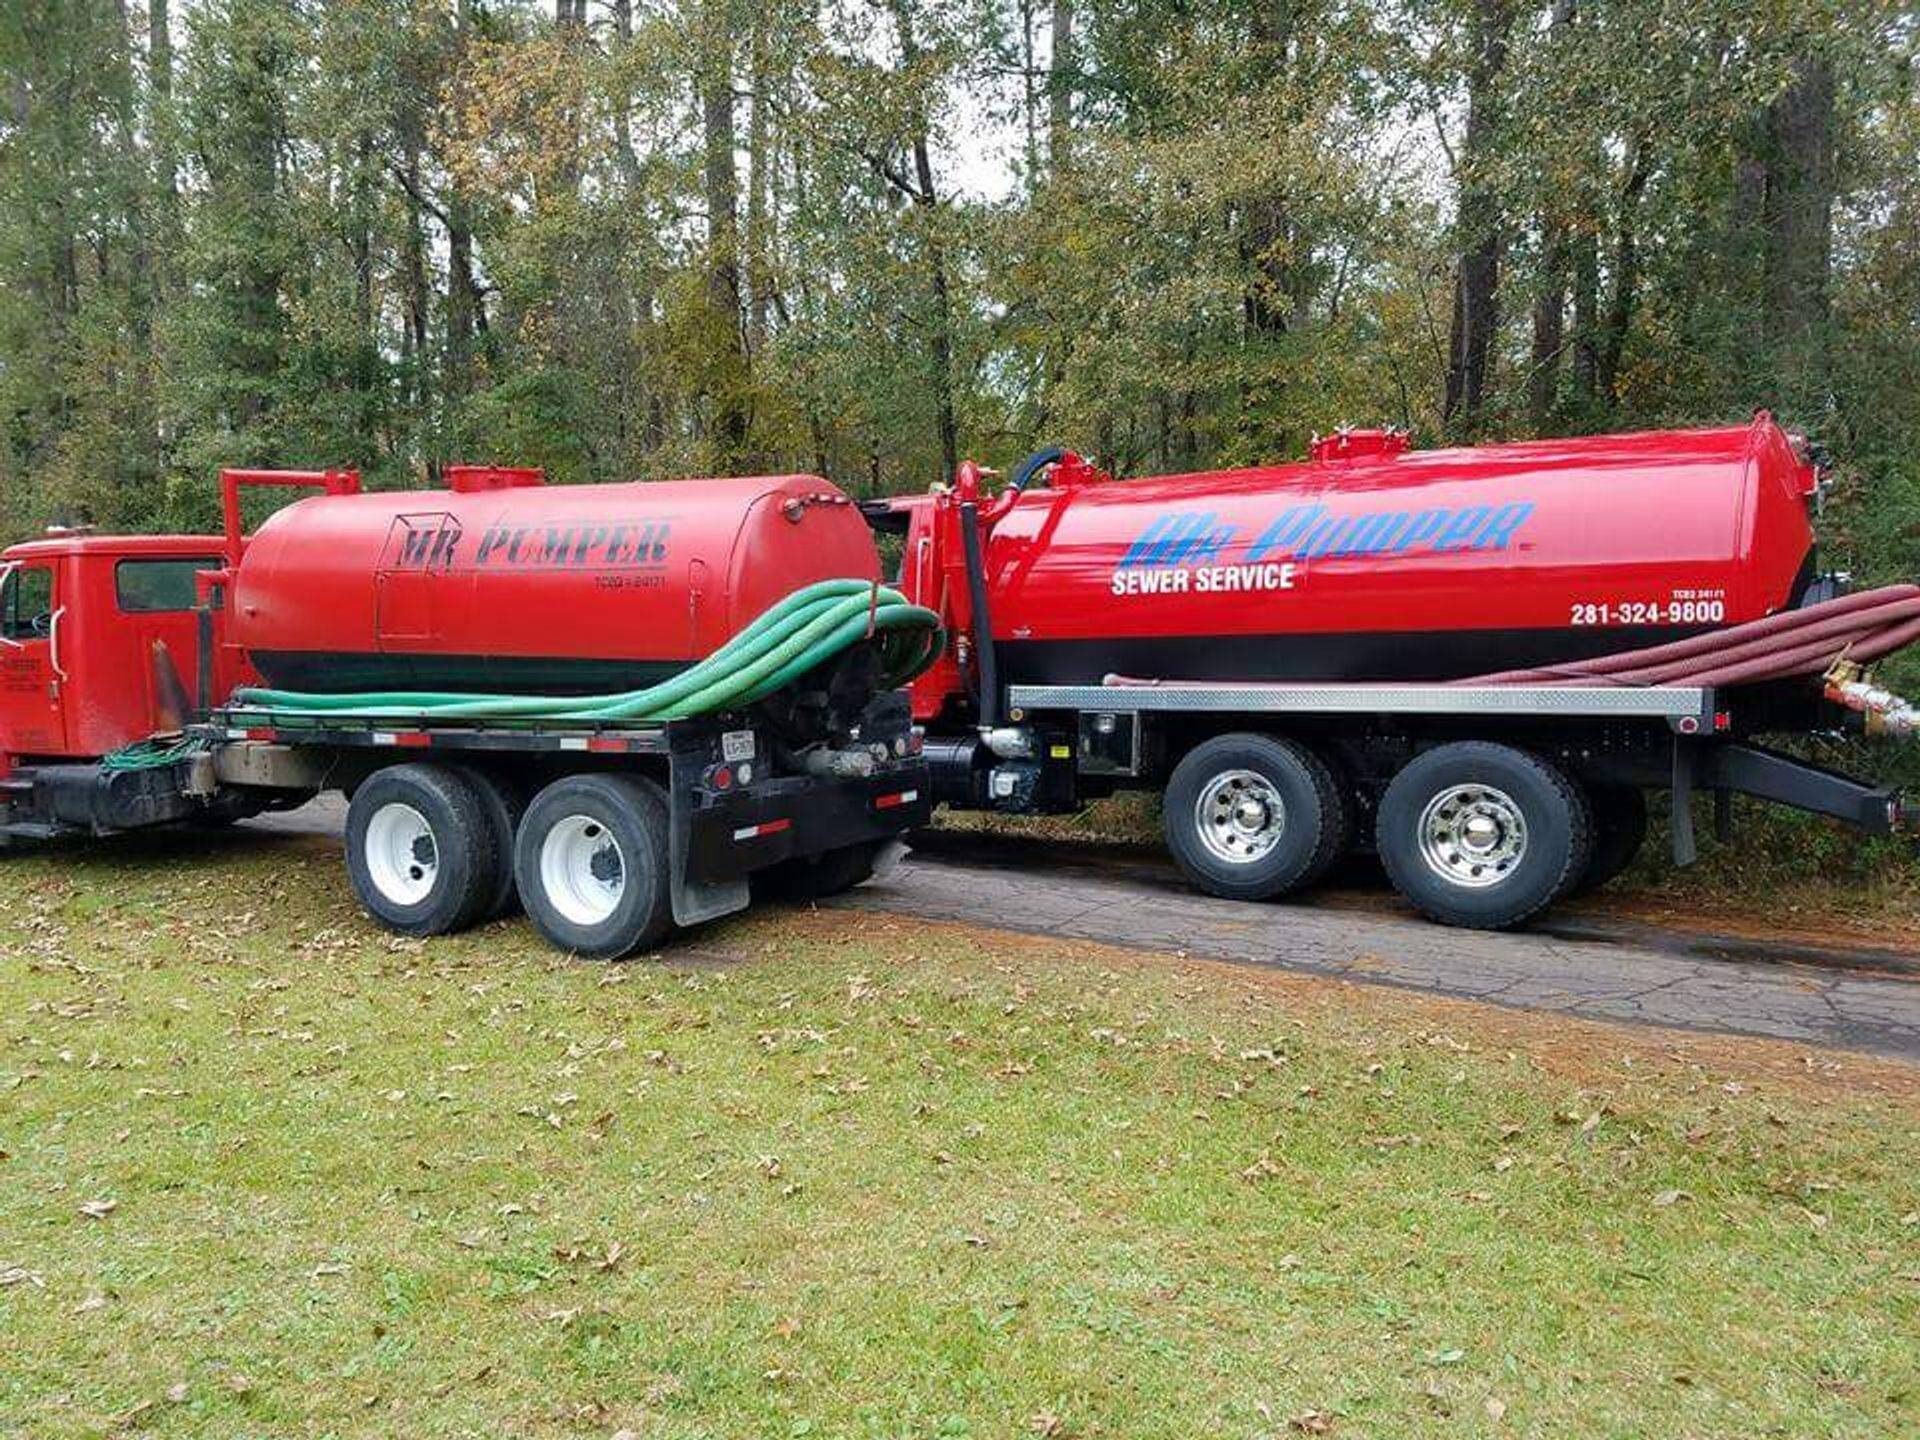 Mr. Pumper's Fleet